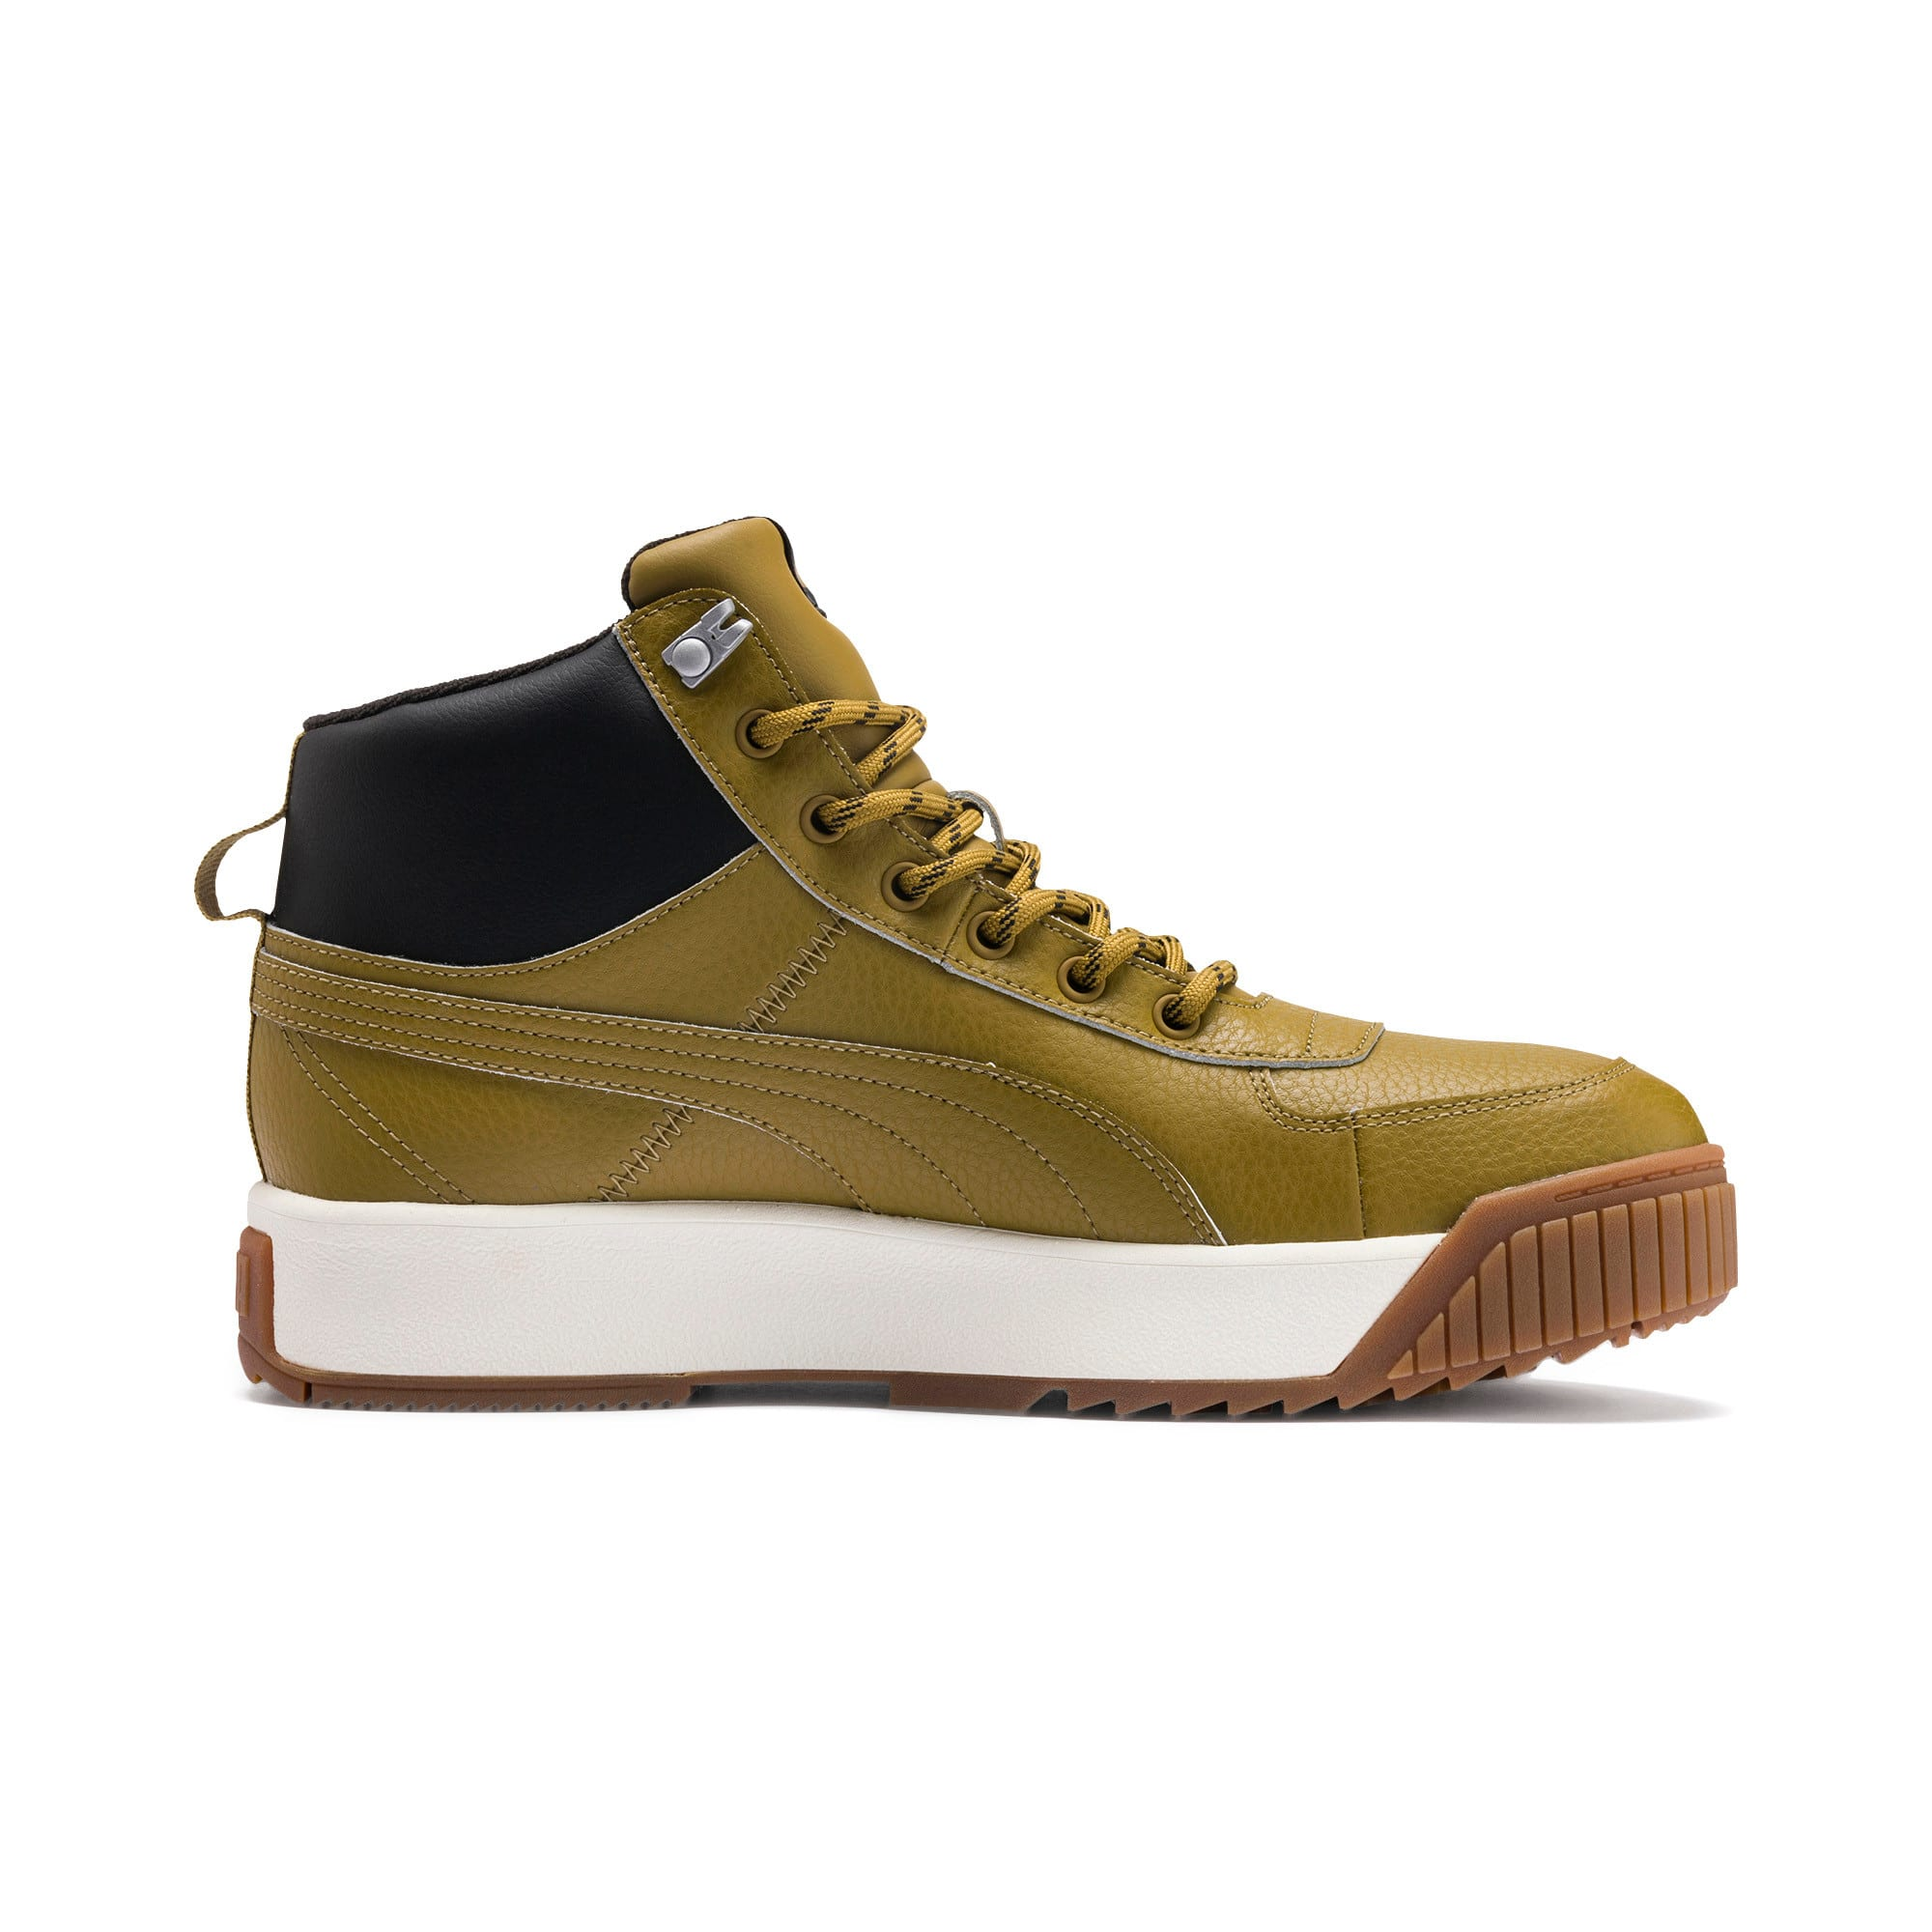 Thumbnail 6 of Tarrenz SB PURE-TEX Sneaker, Moss Green-Puma Black, medium